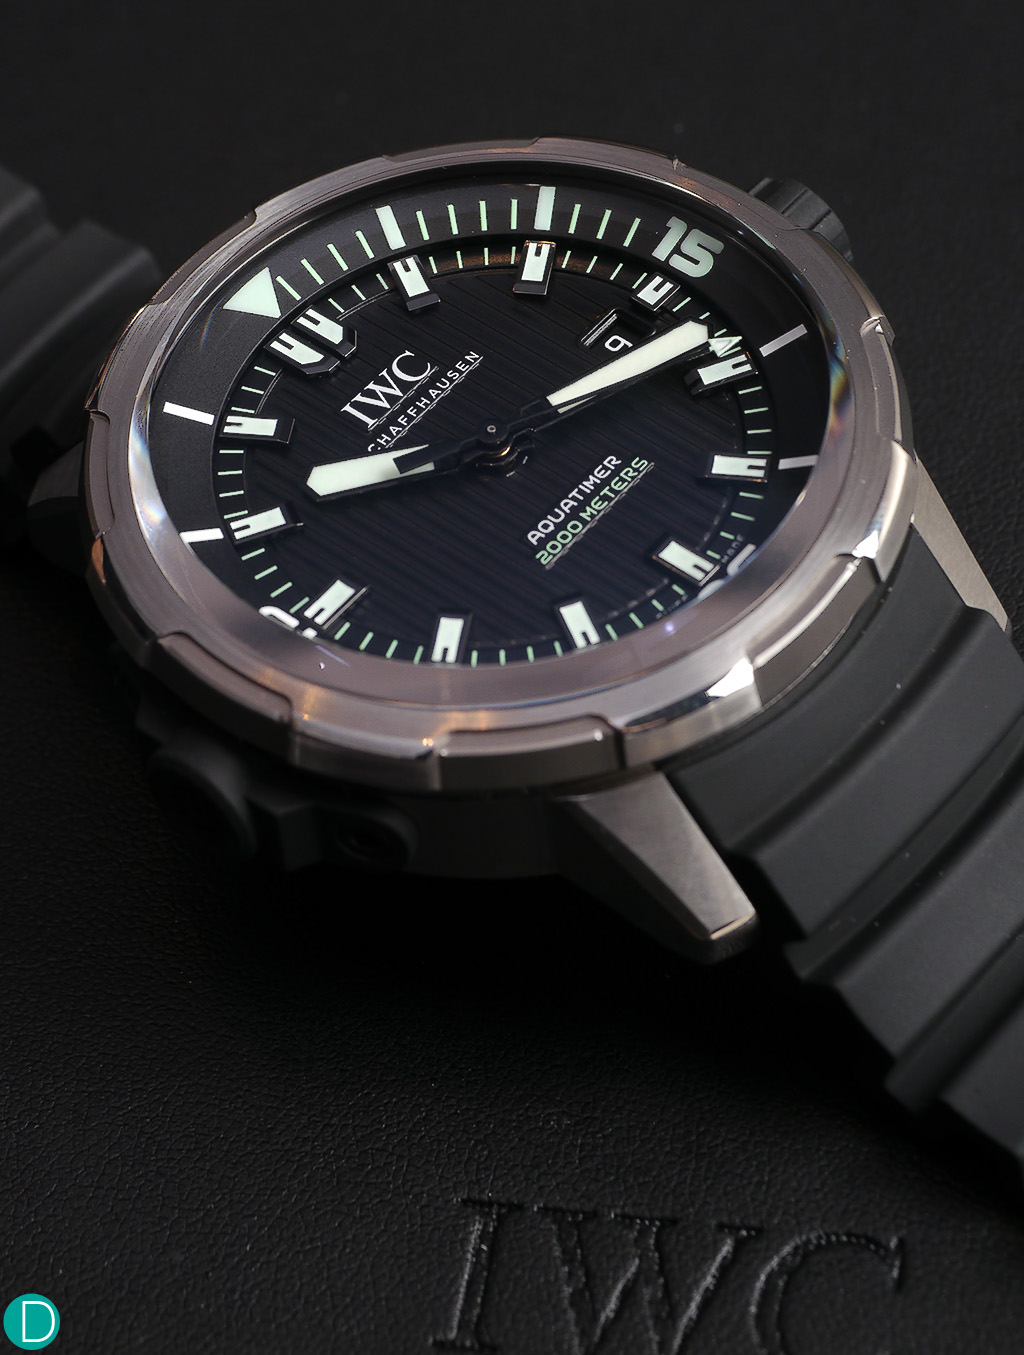 The IWC Aquatimer Automatic 2000, in one of the two available dial variations.